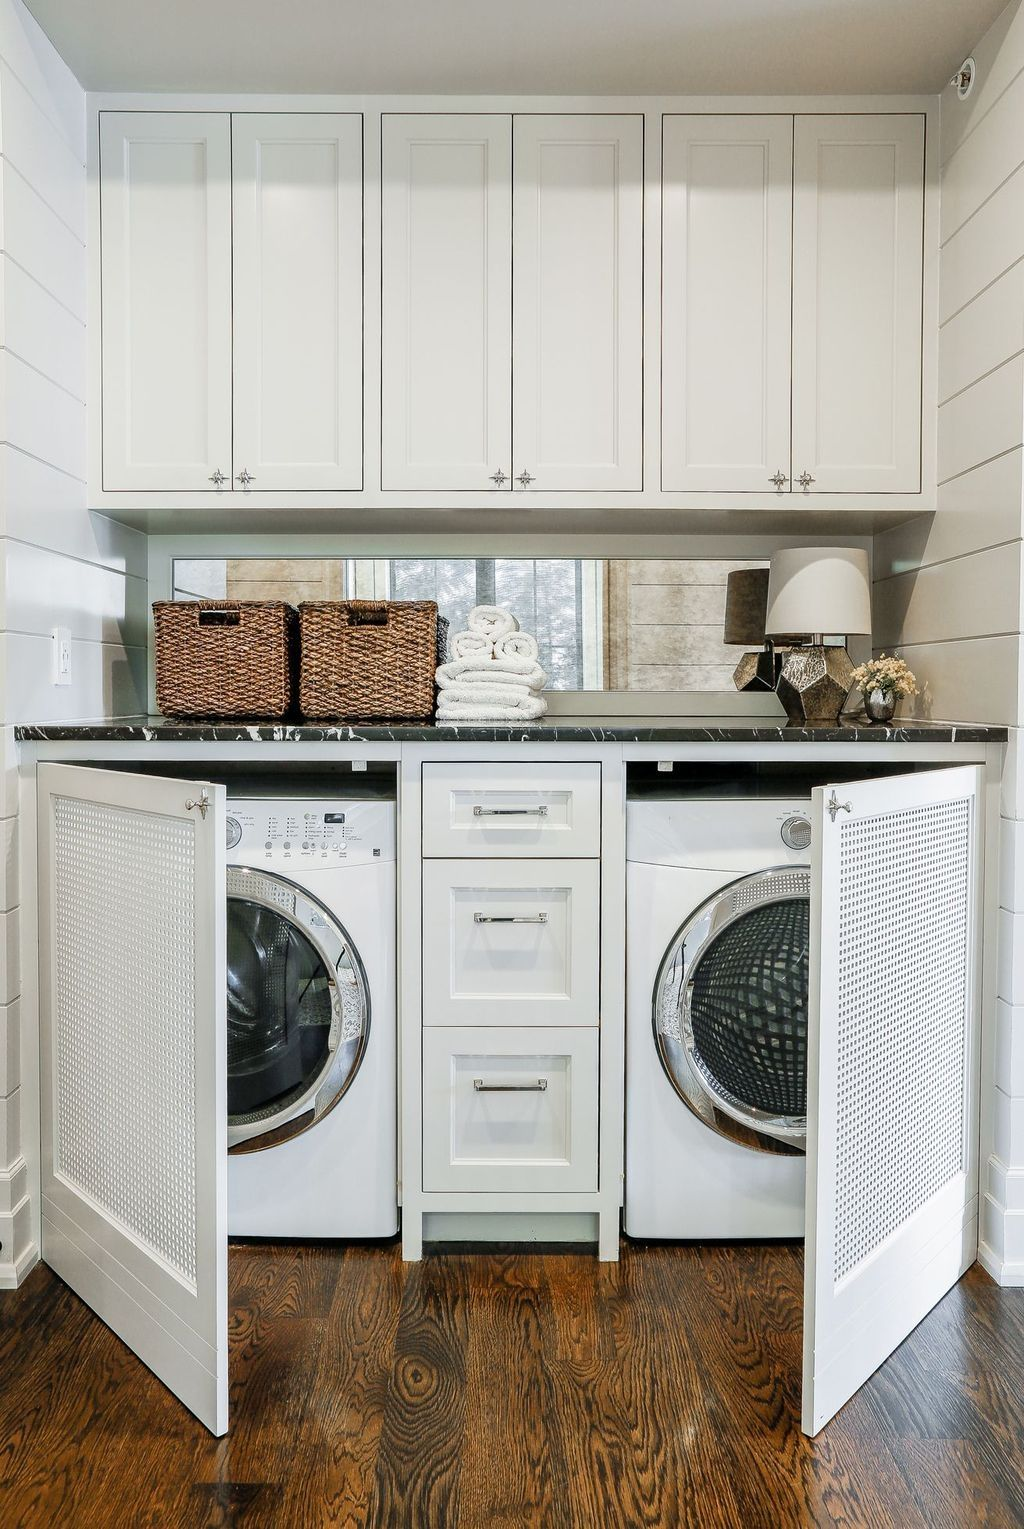 30 Fascinating Small Laundry Room Design Ideas Coodecor Tiny